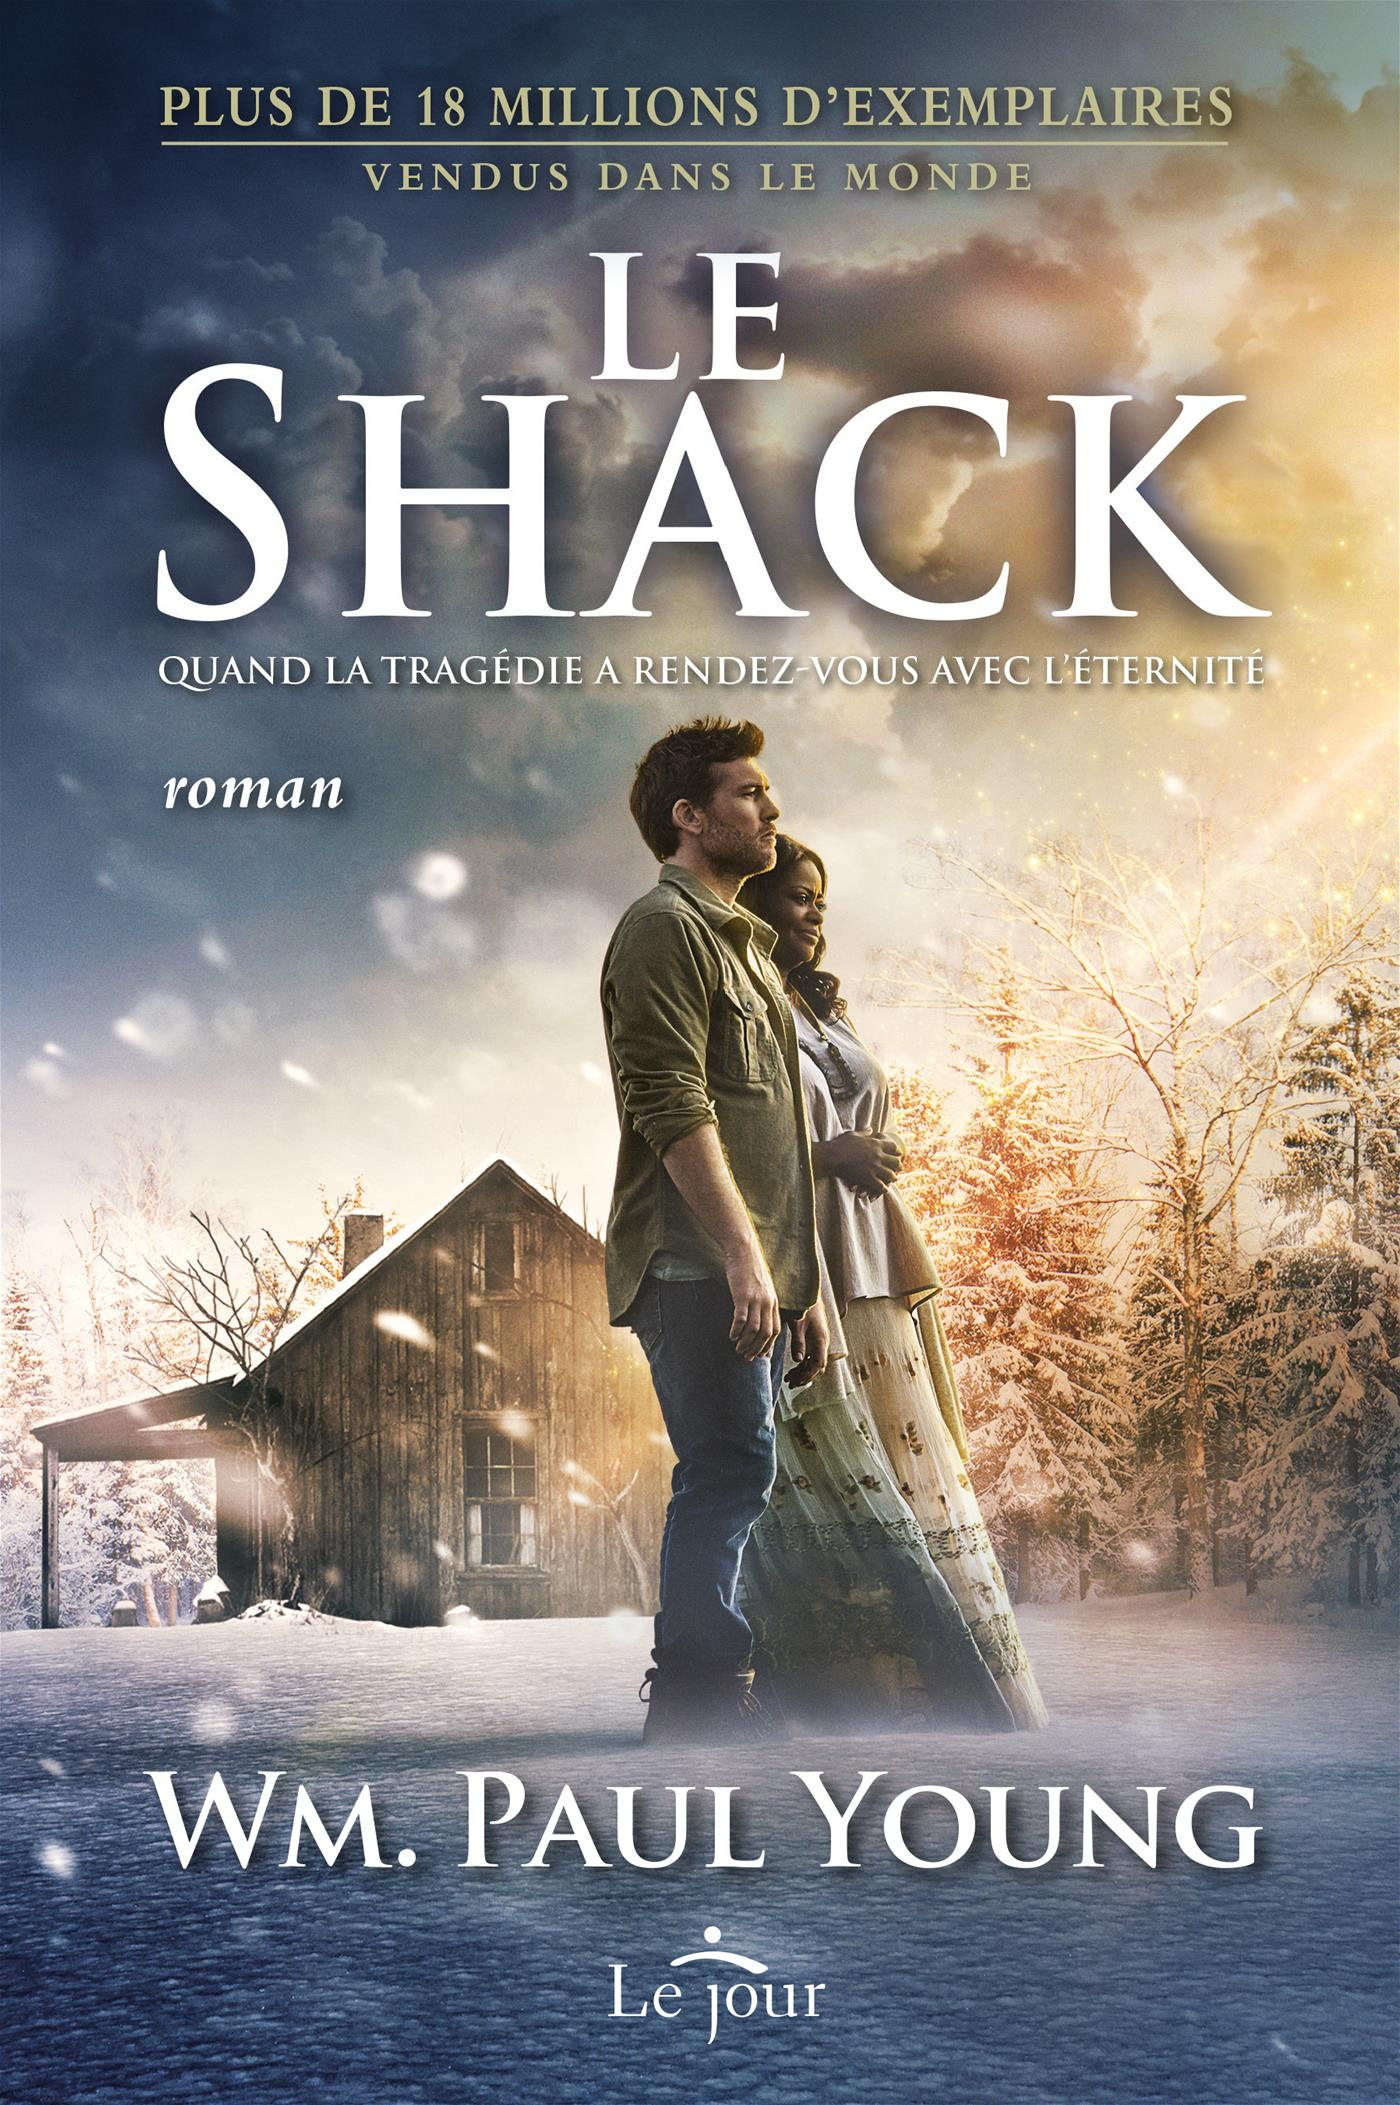 Vignette du livre Shack (Le) - William Paul Young